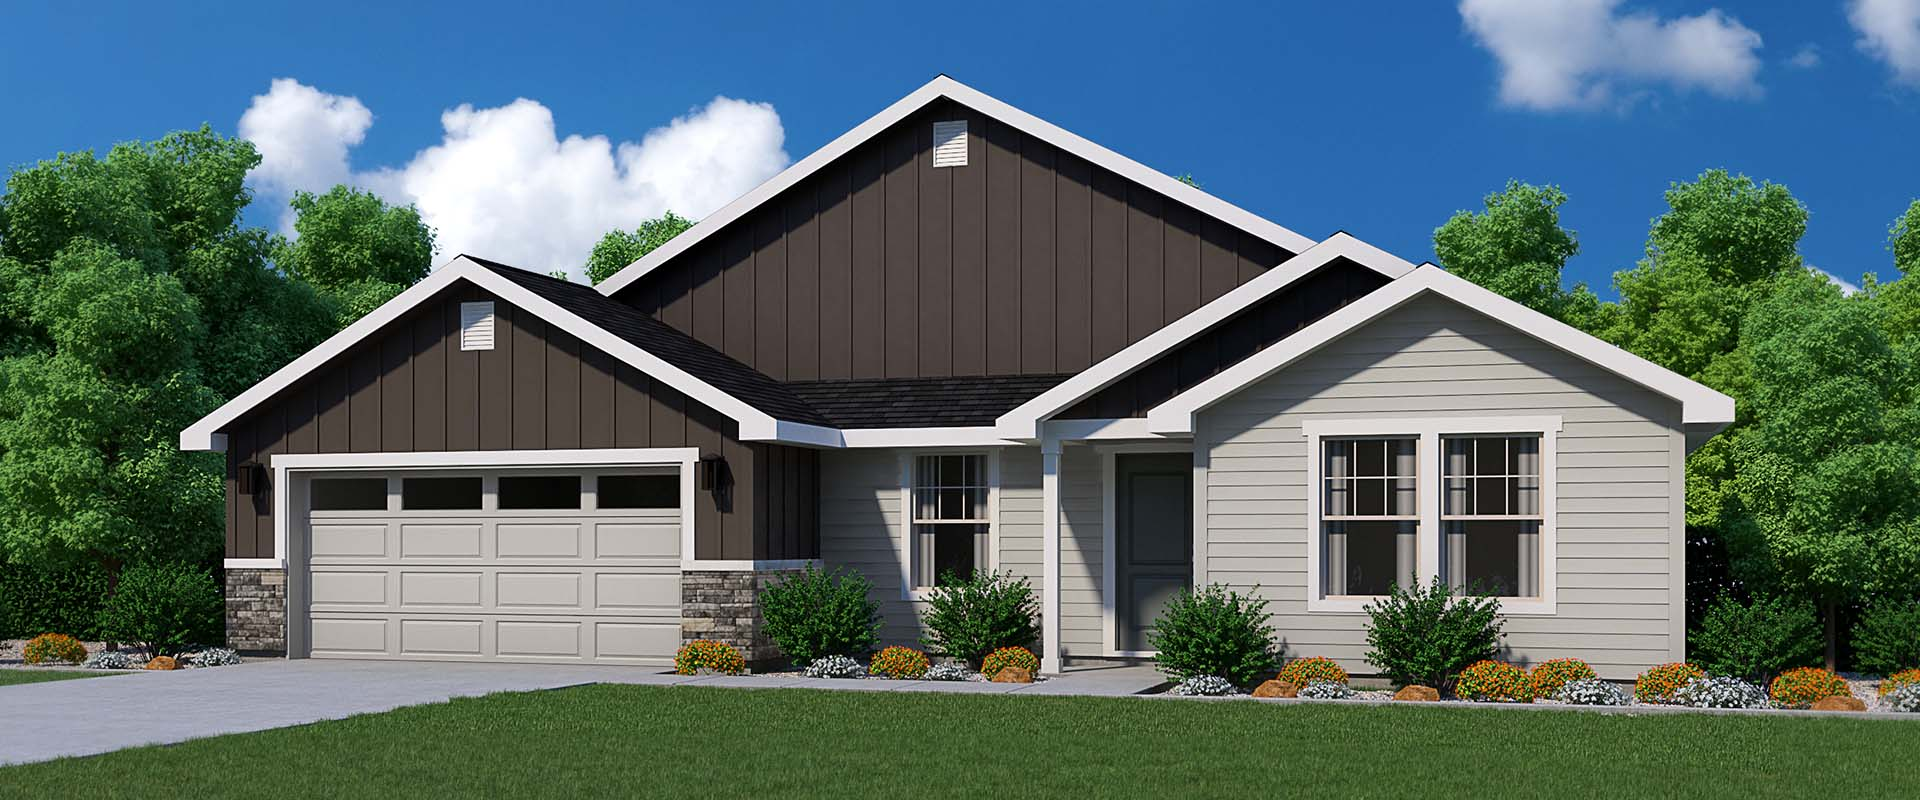 new-homes-boise-idaho-hubble-homes_0039_Amethyst Country pack 42.jpg